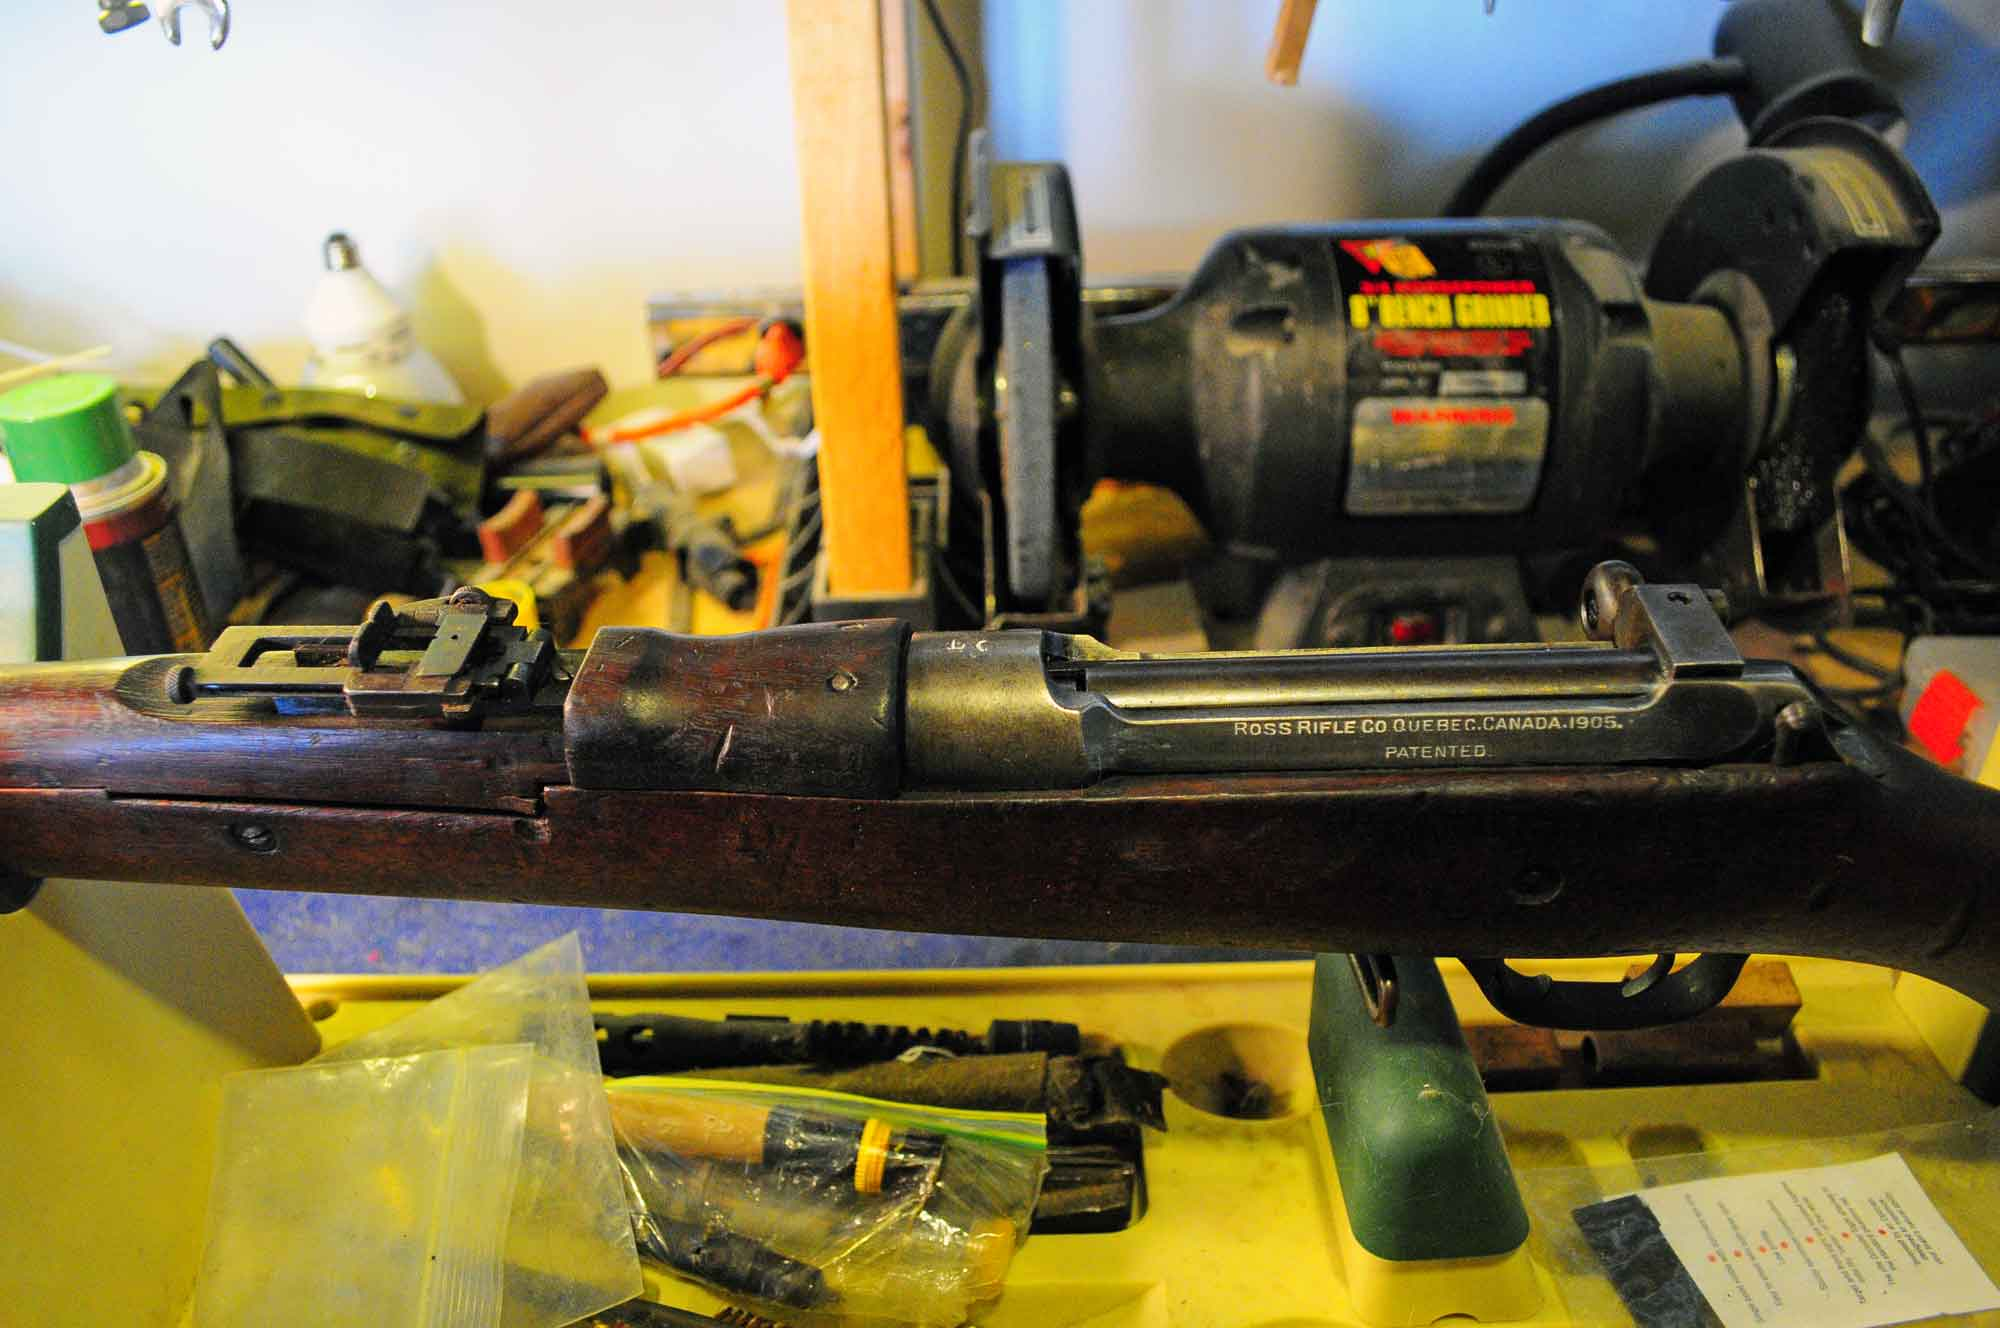 Ross M1905 receiver with the bolt stop standing proud thanks to it's ball point pen donor.